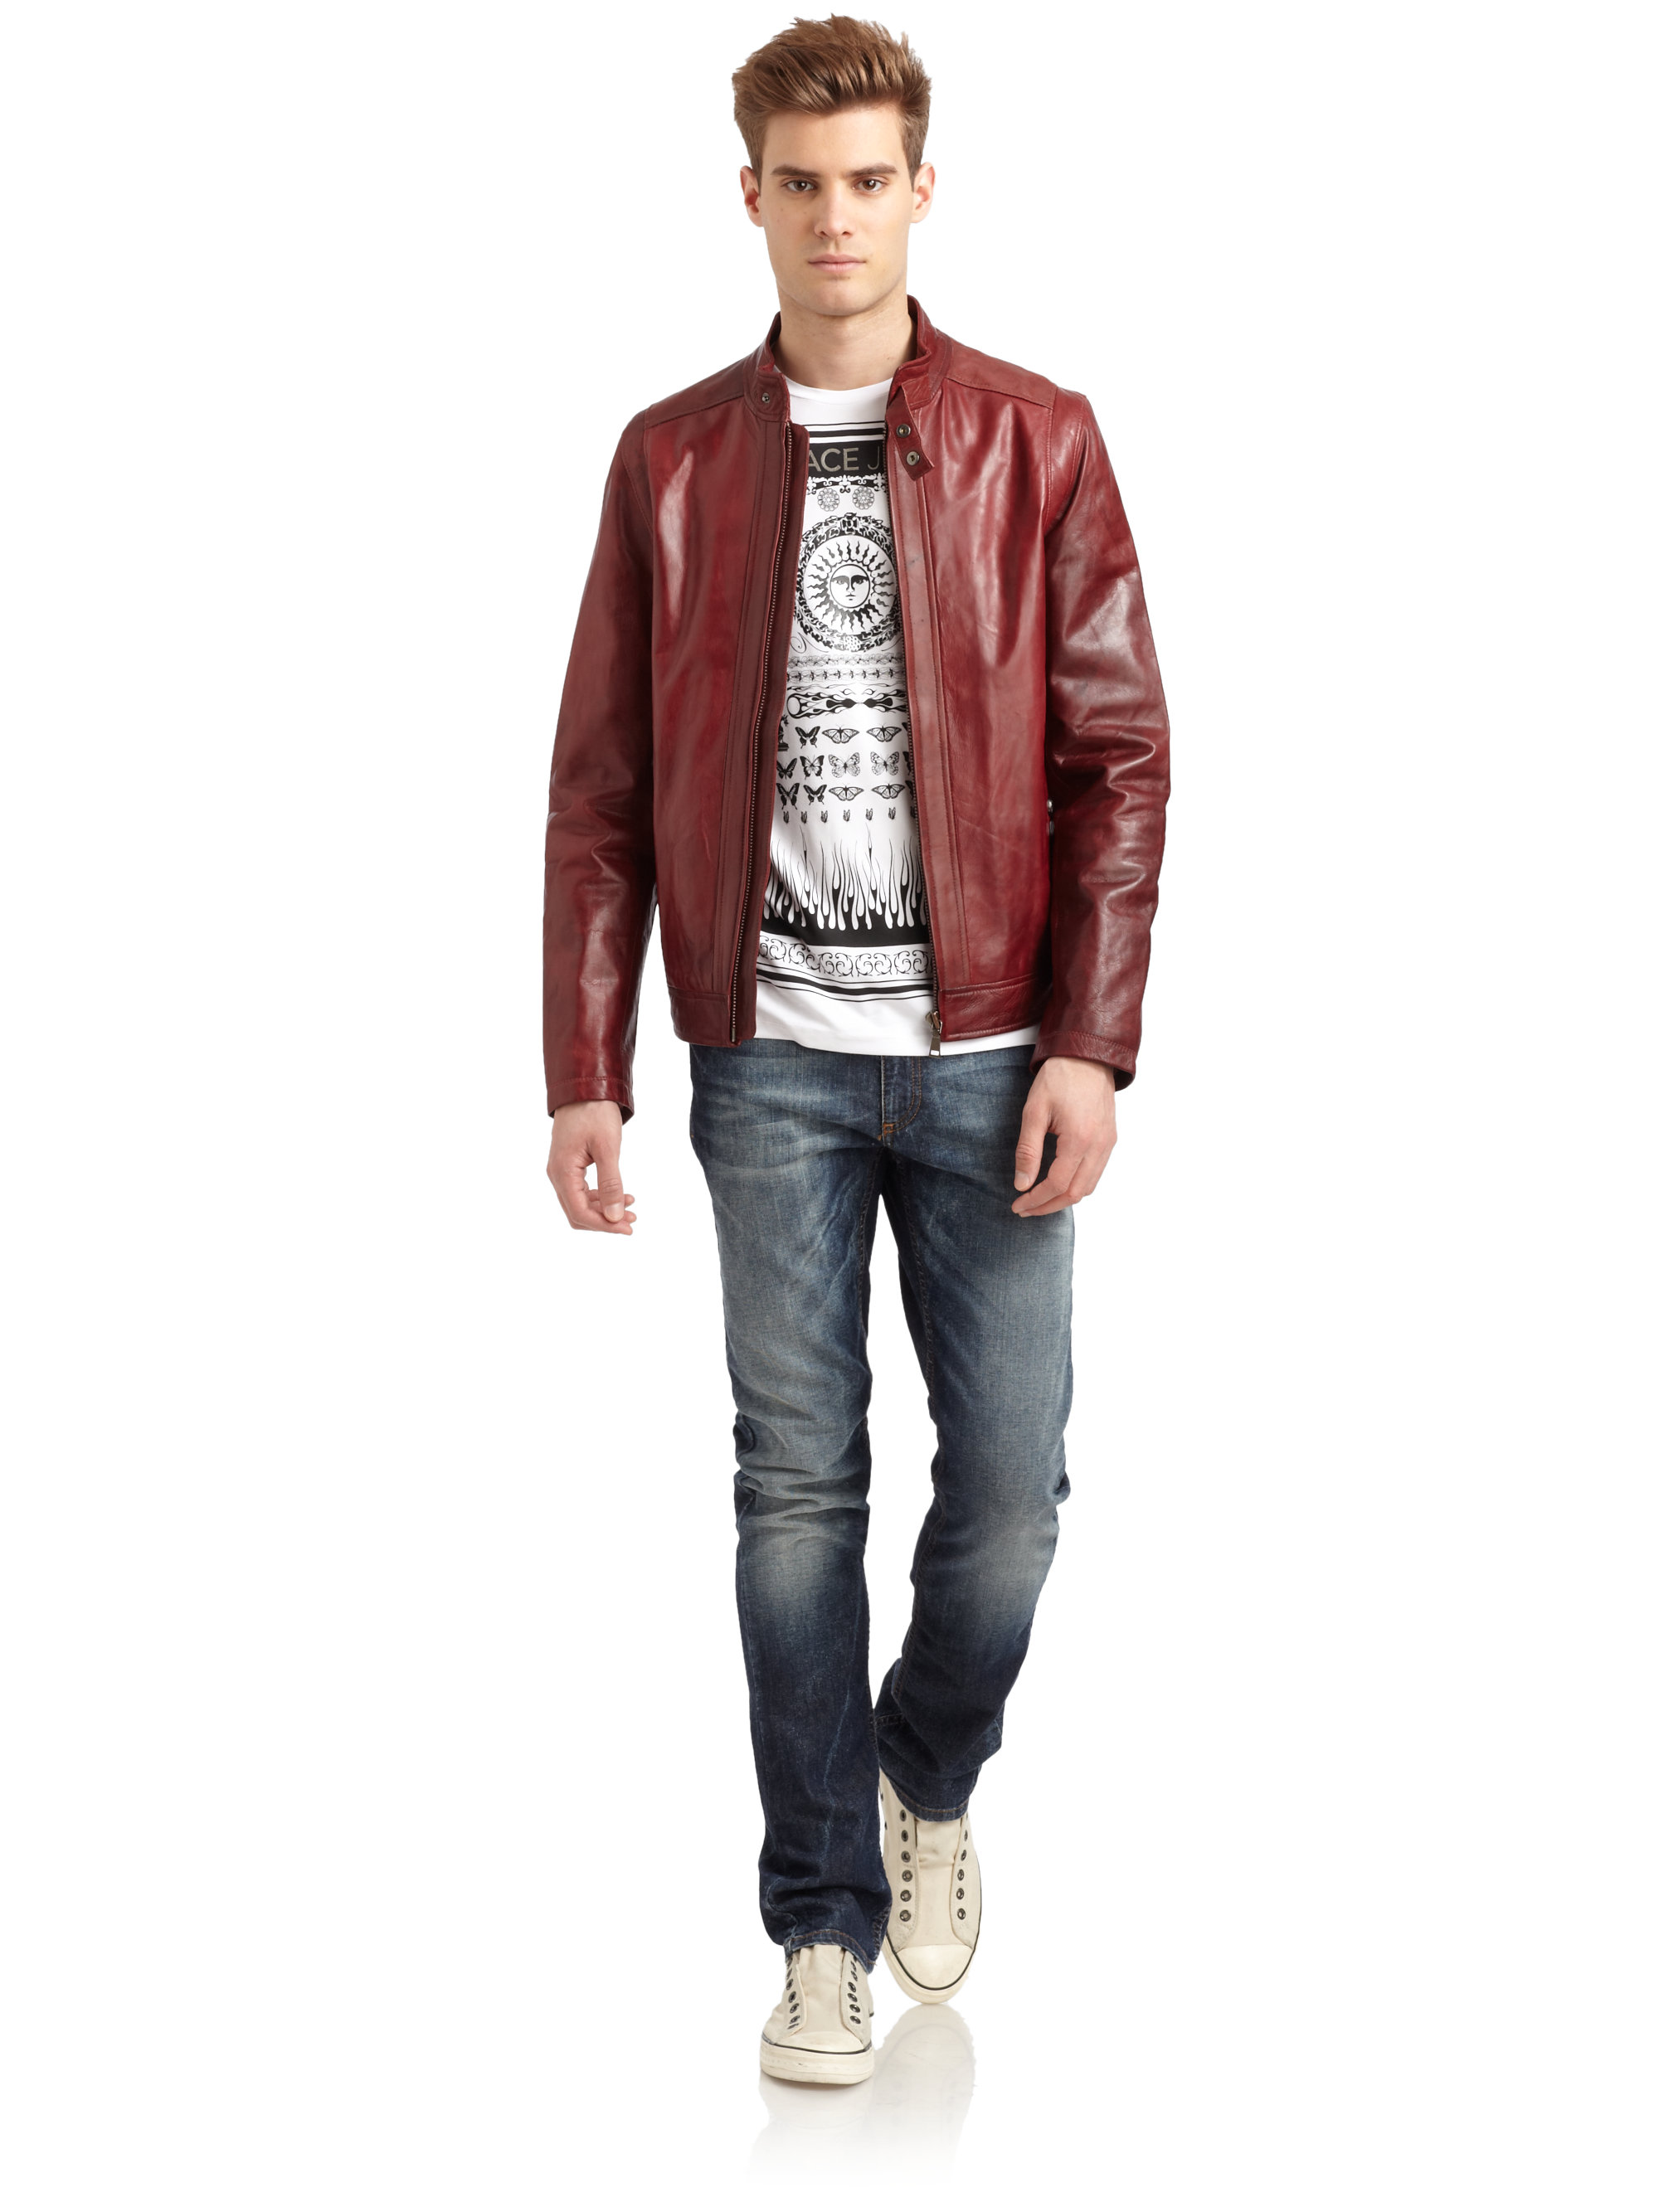 Versace Jeans Variegated Leather Jacket in Red for Men - Lyst